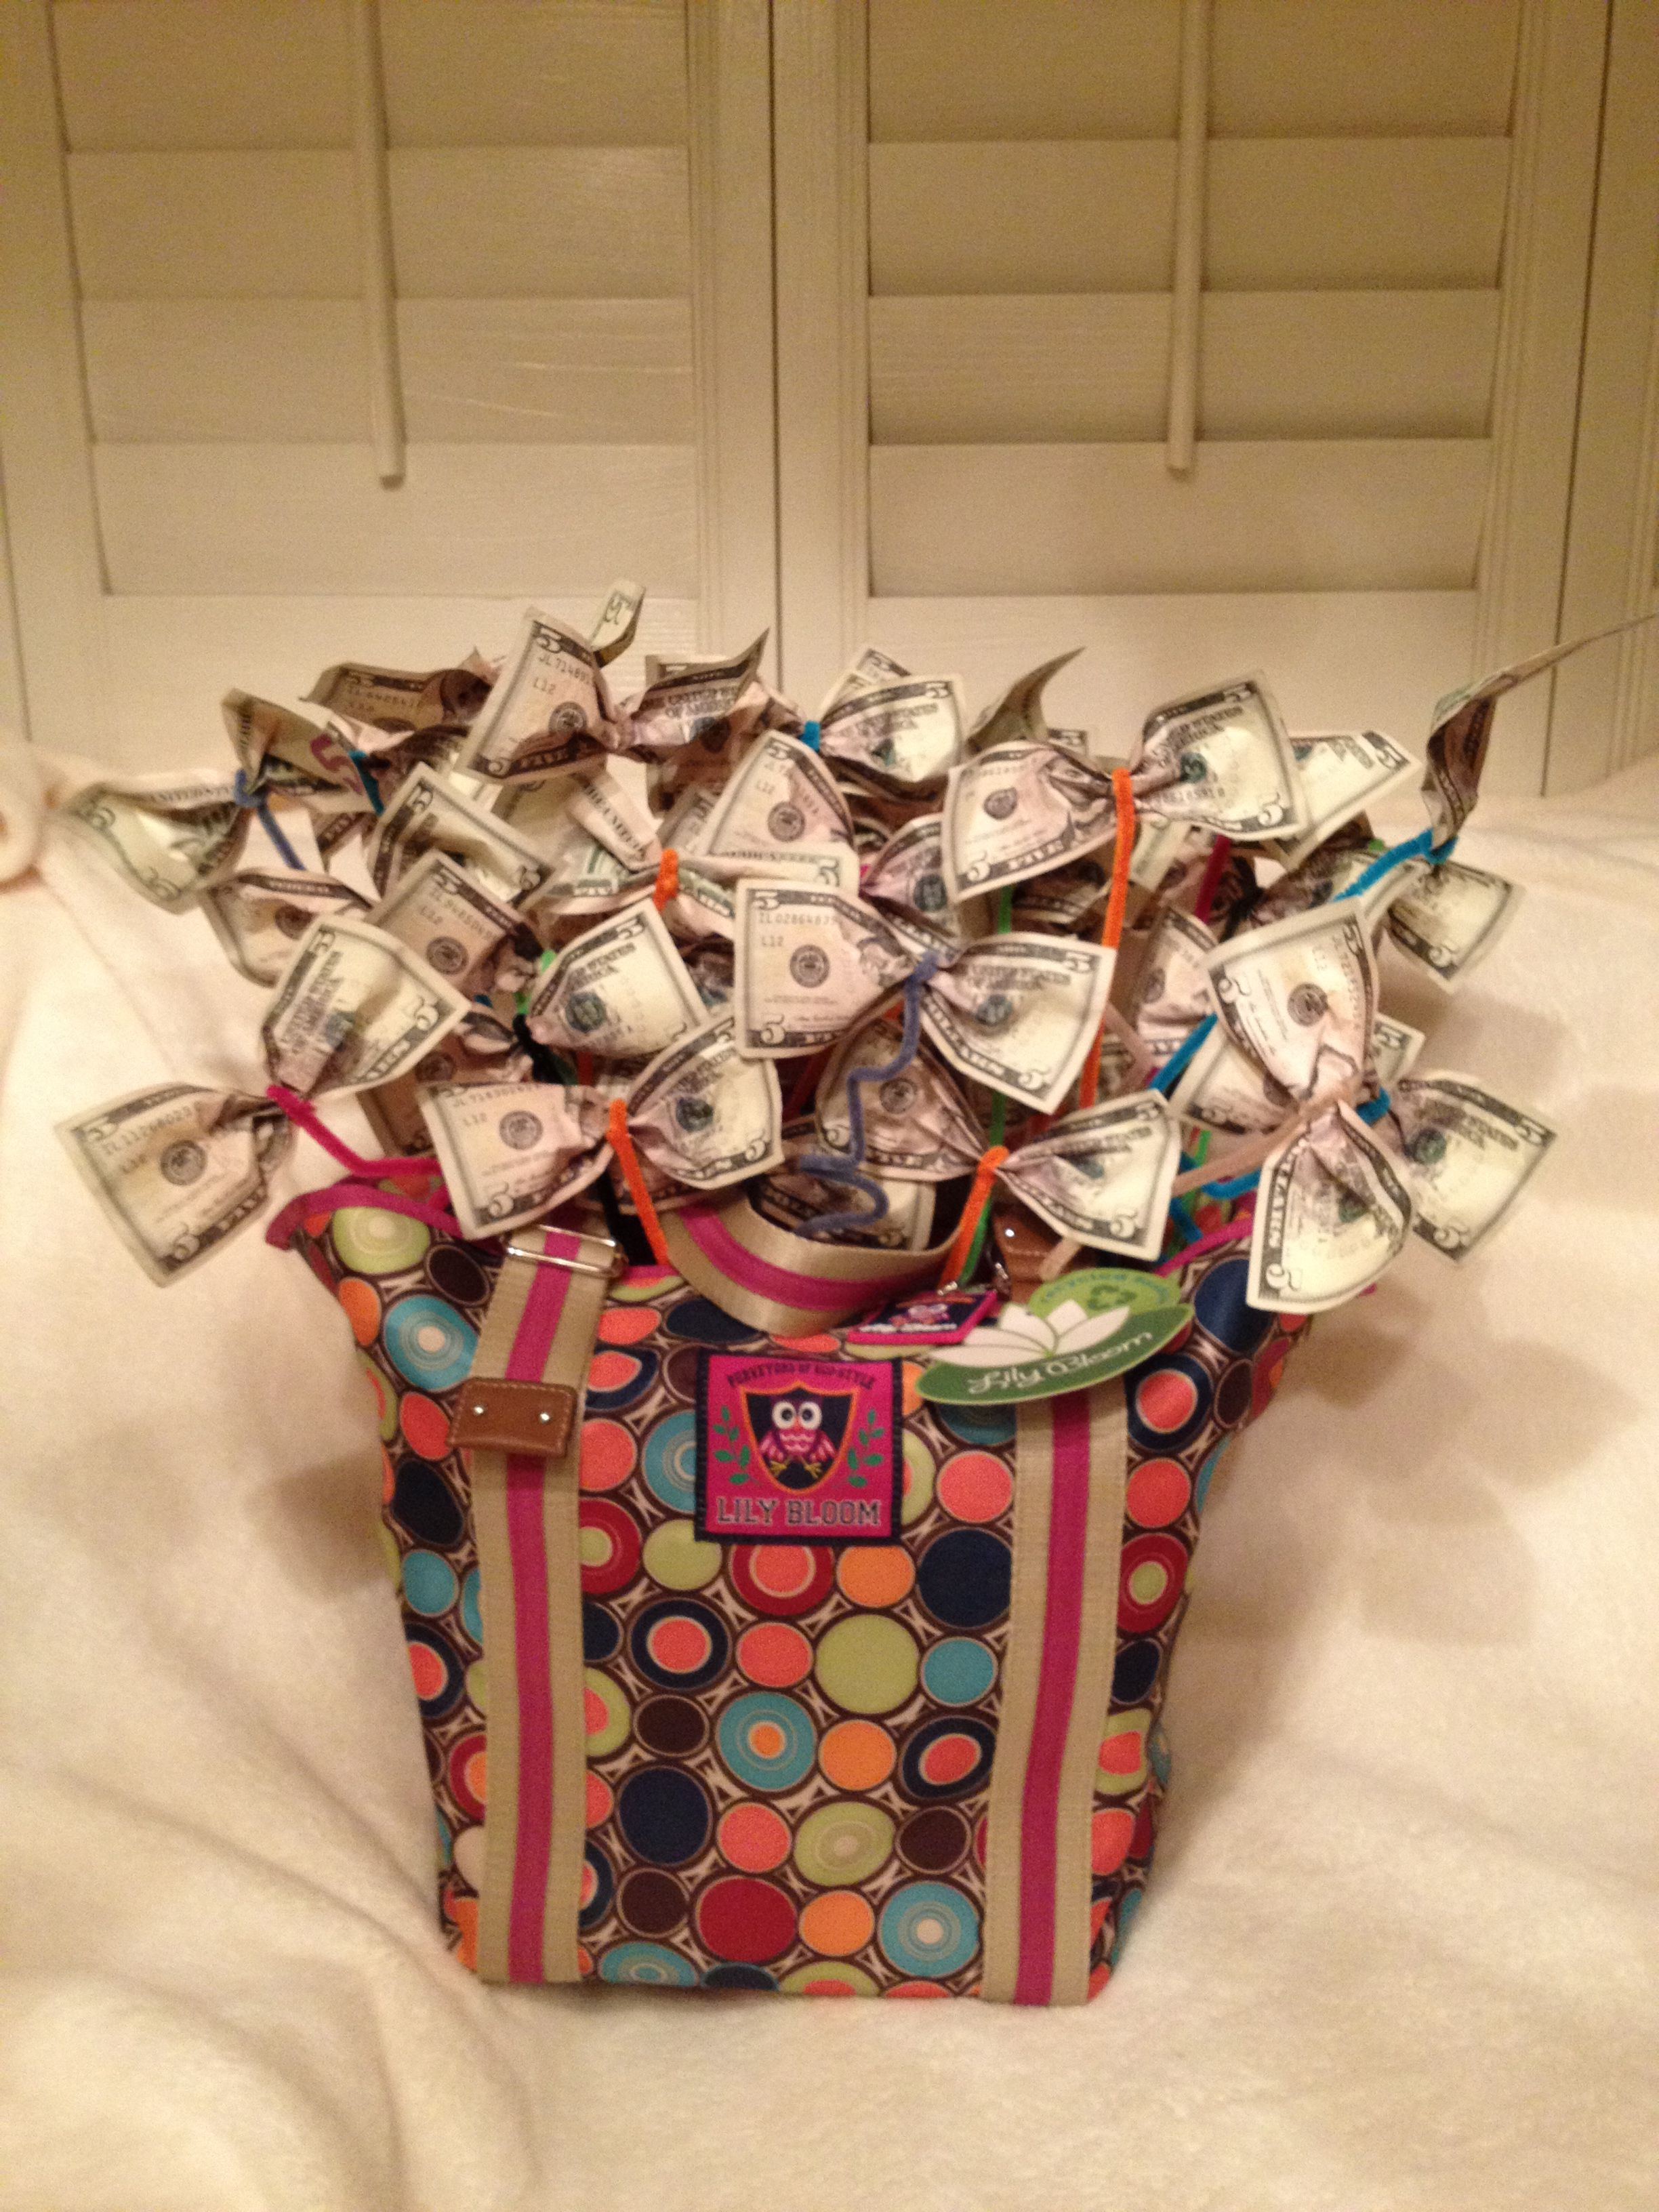 u0026quot money bag u0026quot   raffle basket i made for chorus fund raiser